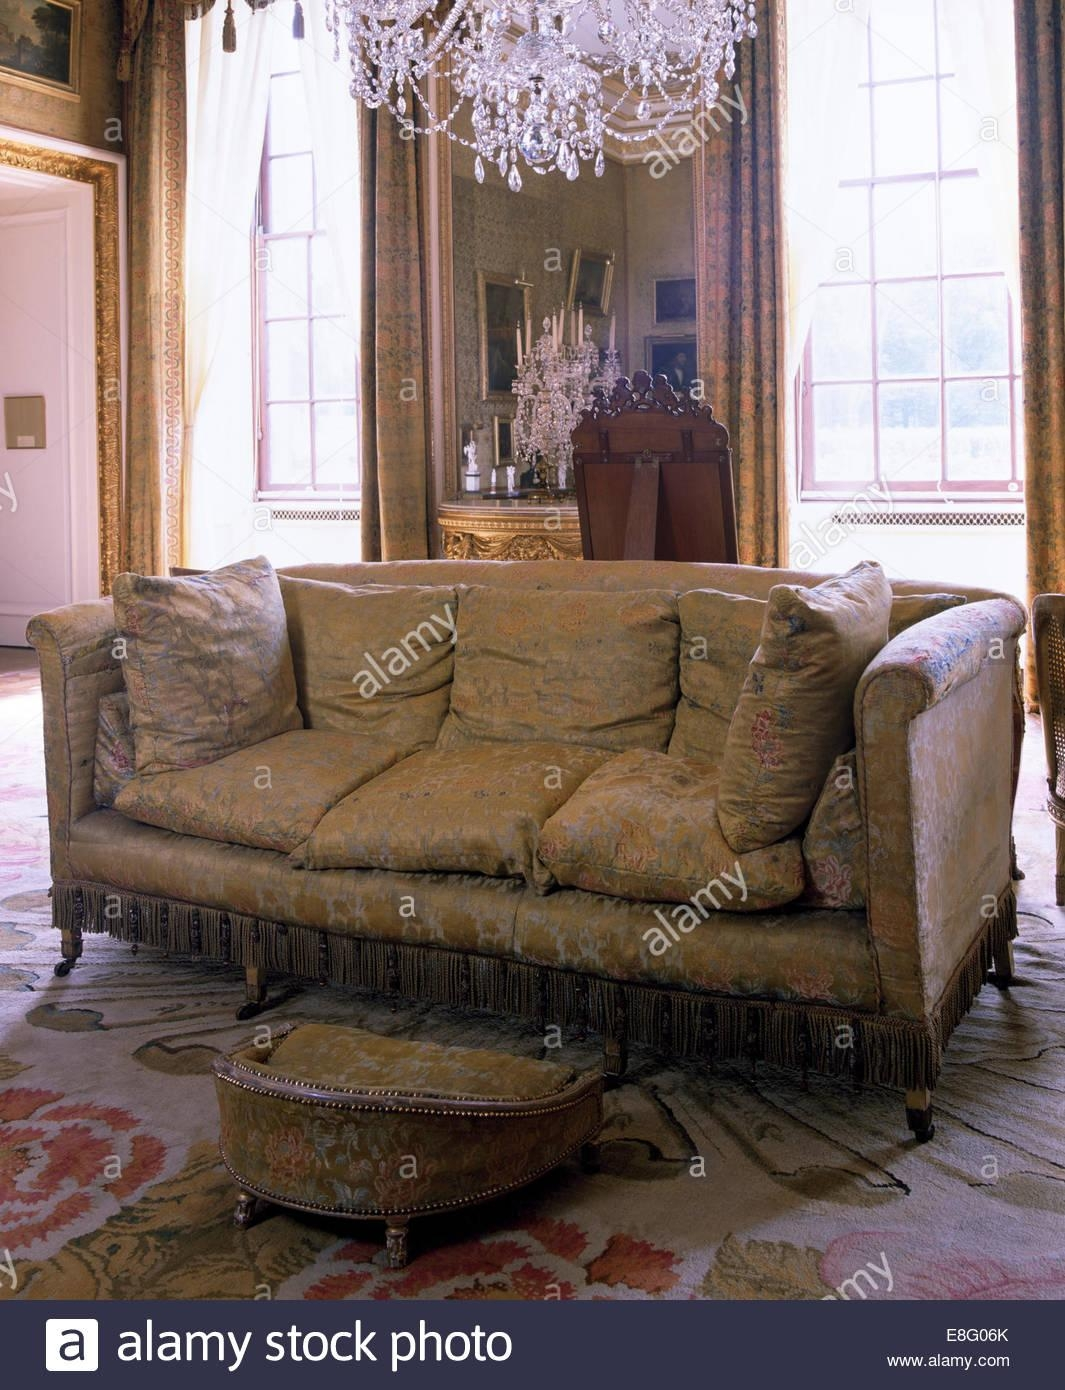 Brocade Sofa In Stately Home Drawing Room Stock Photo, Royalty Within Brocade Sofas (View 15 of 20)